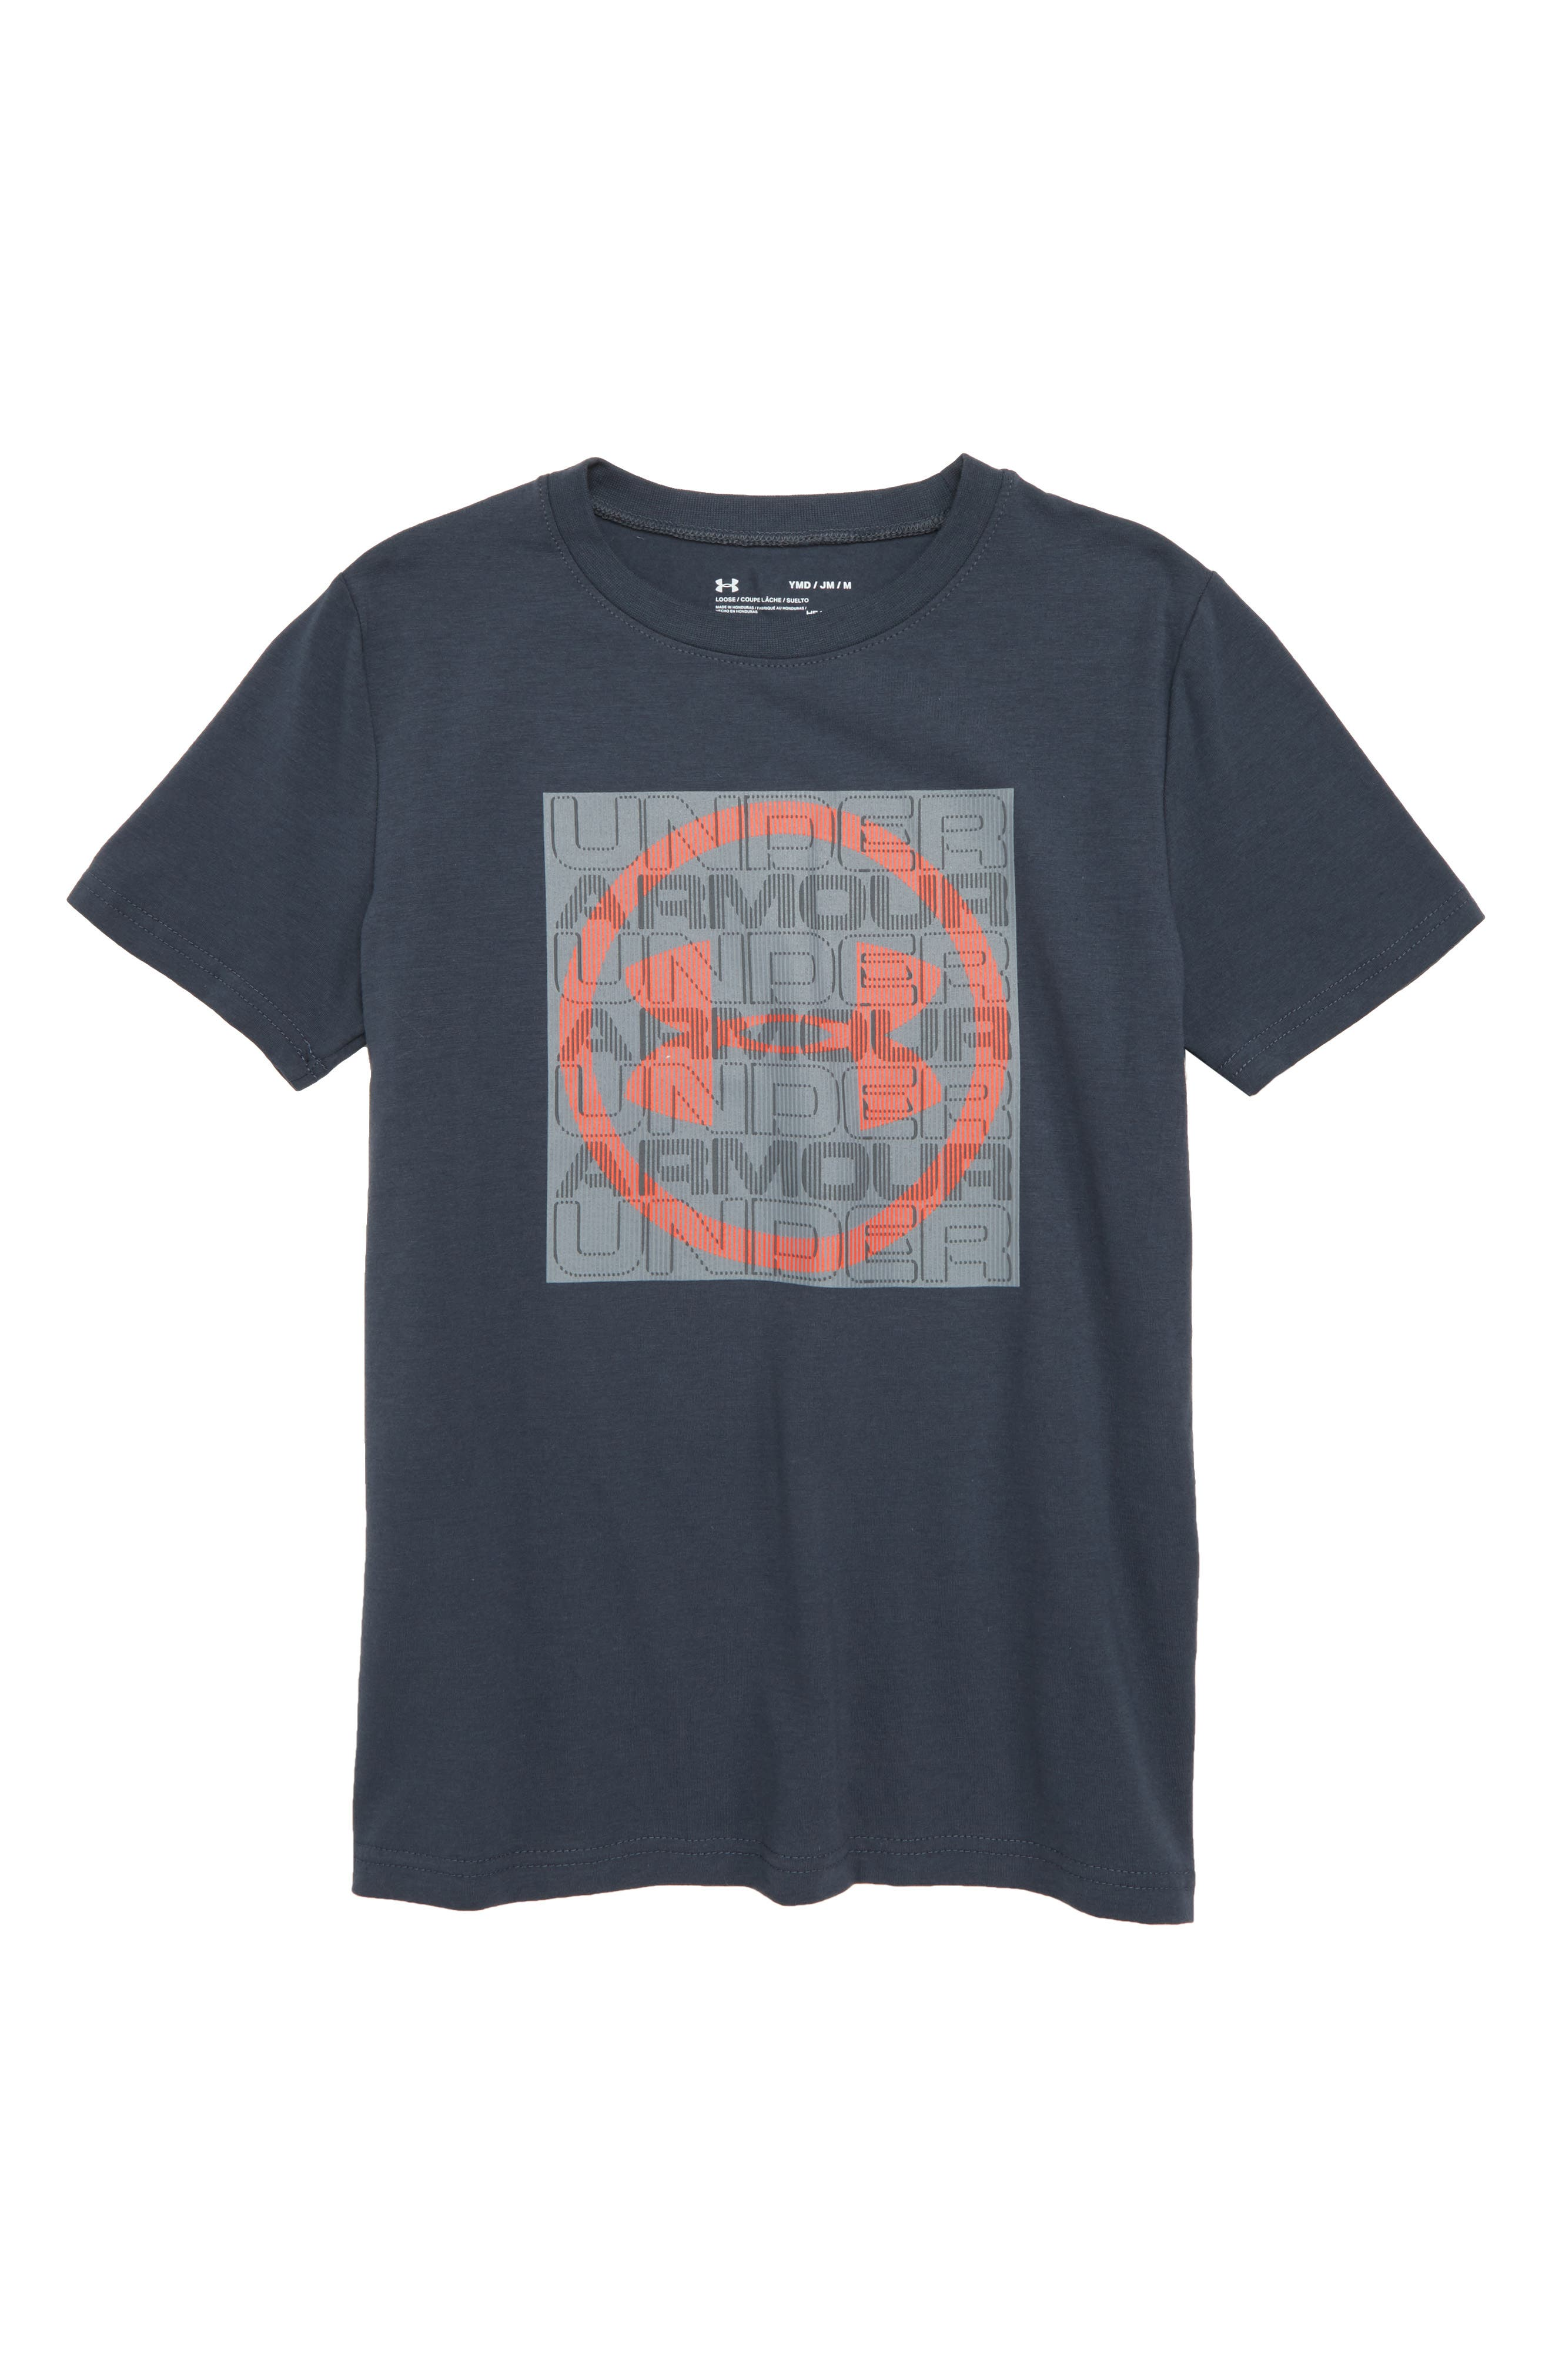 Visualogo T-Shirt,                             Main thumbnail 1, color,                             Stealth Gray/ Neon Coral